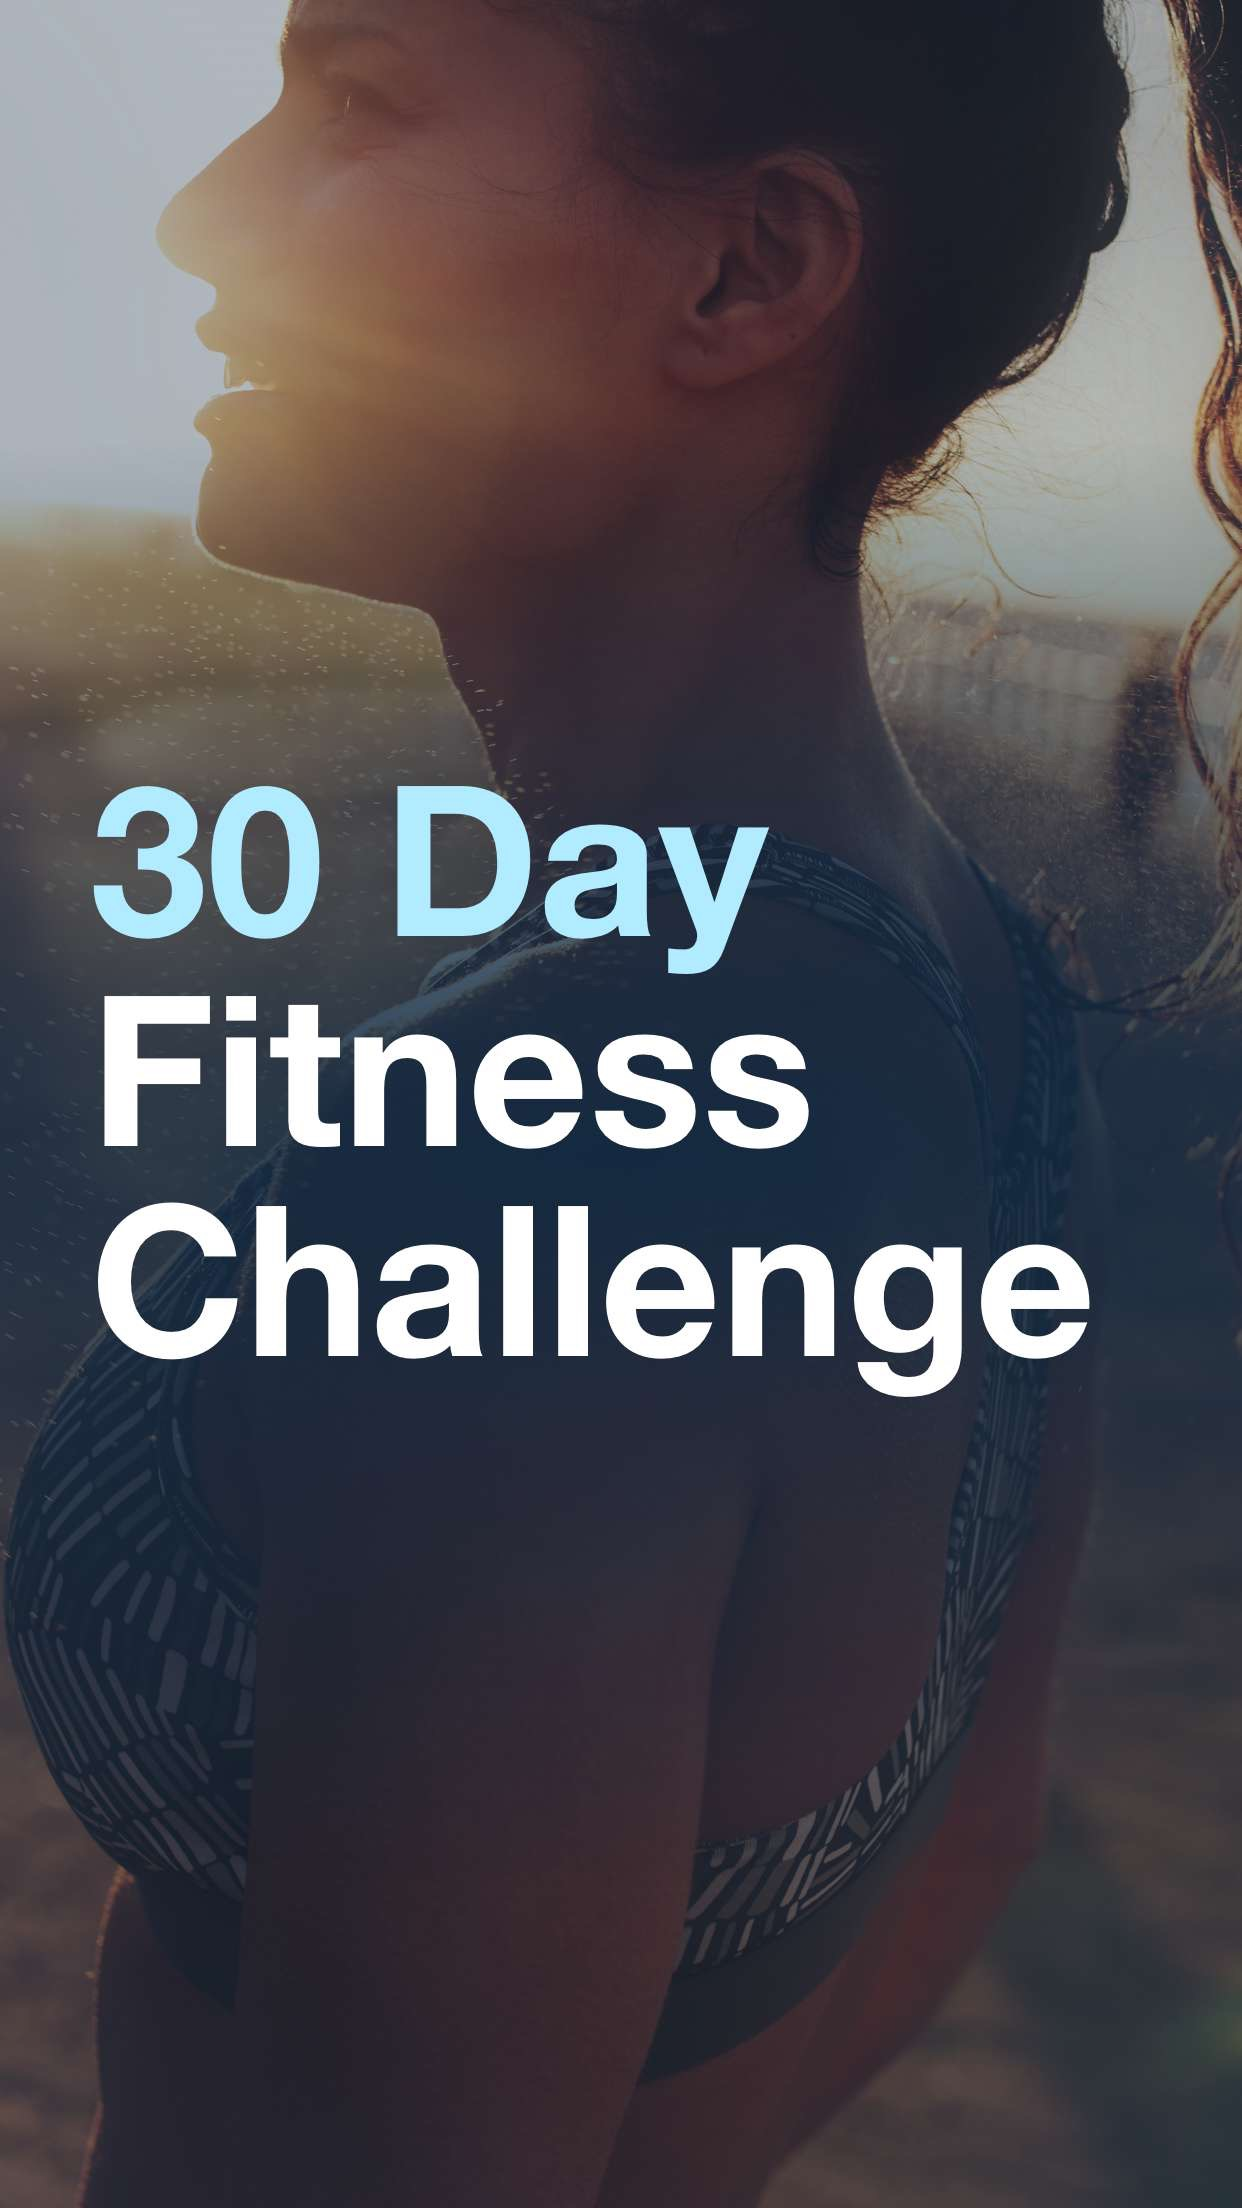 30 Day Fitness Challenge Log Screenshot